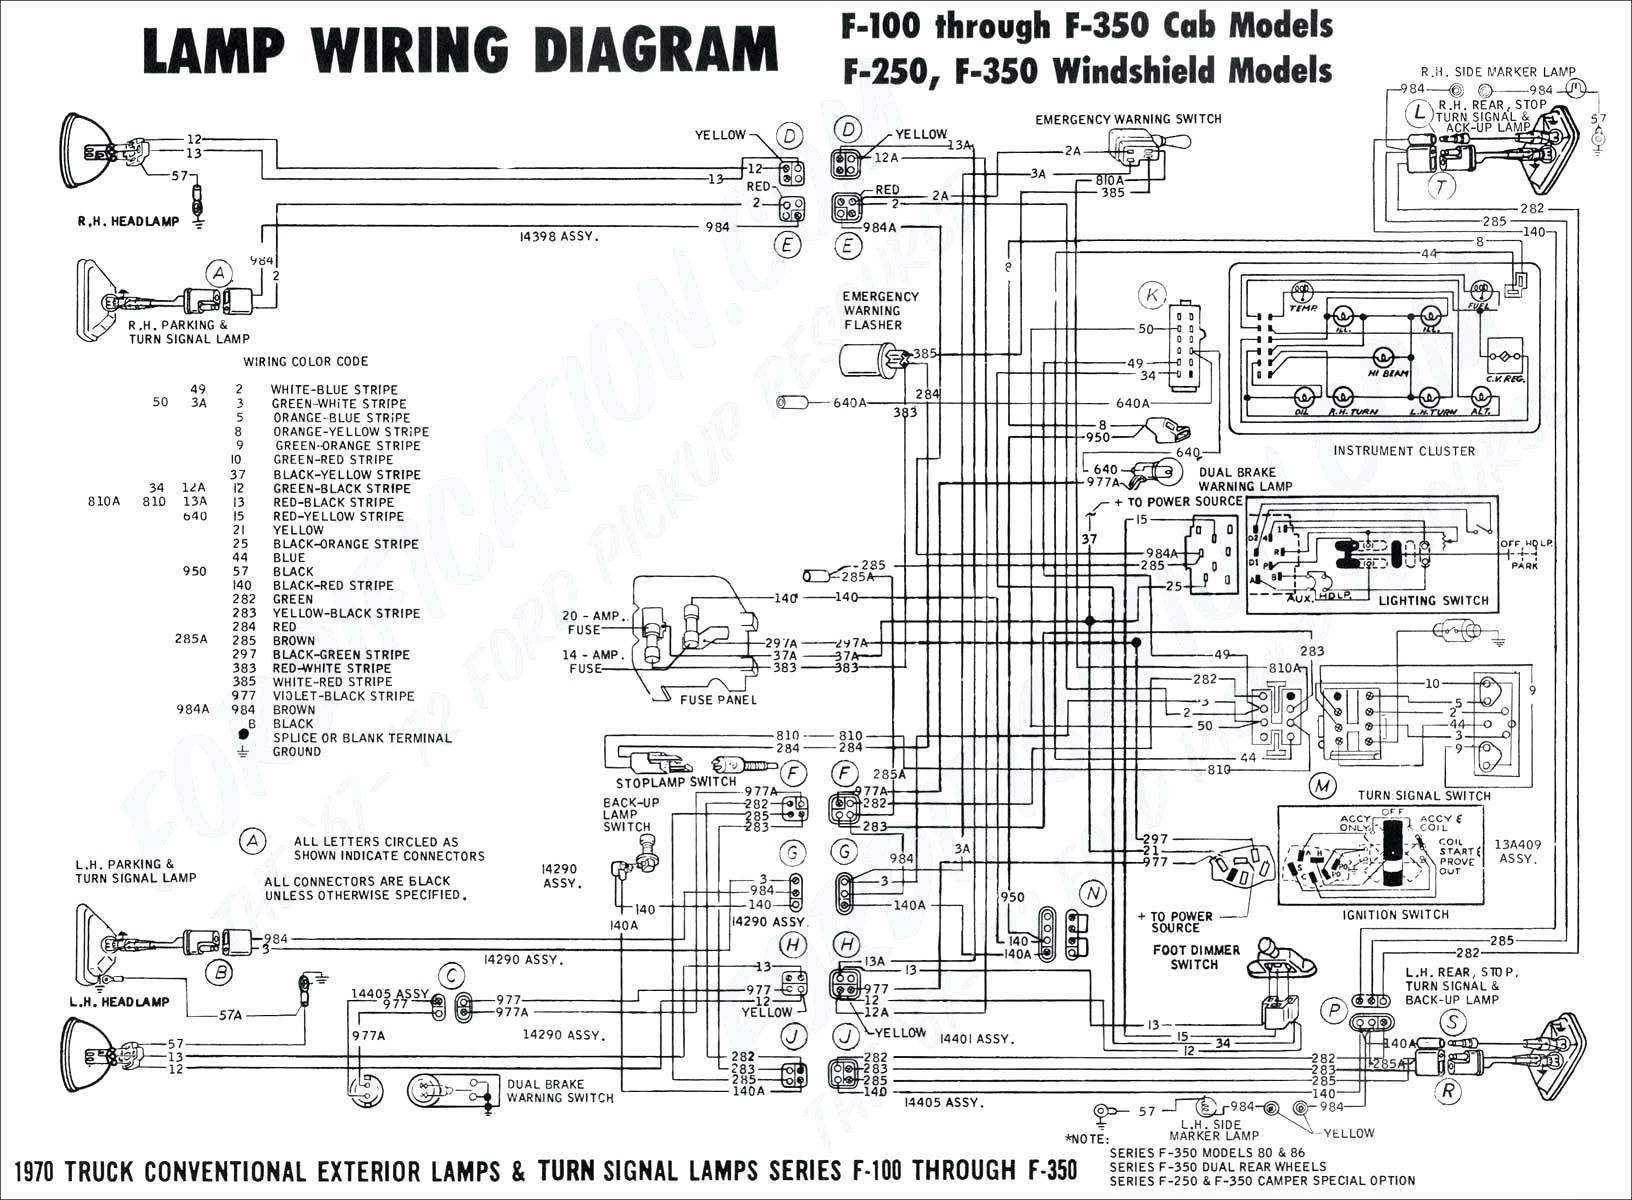 2 2 Ecotec Engine Diagram 2005 Silverado Light Wiring Diagram Experts Wiring Diagram • Of 2 2 Ecotec Engine Diagram